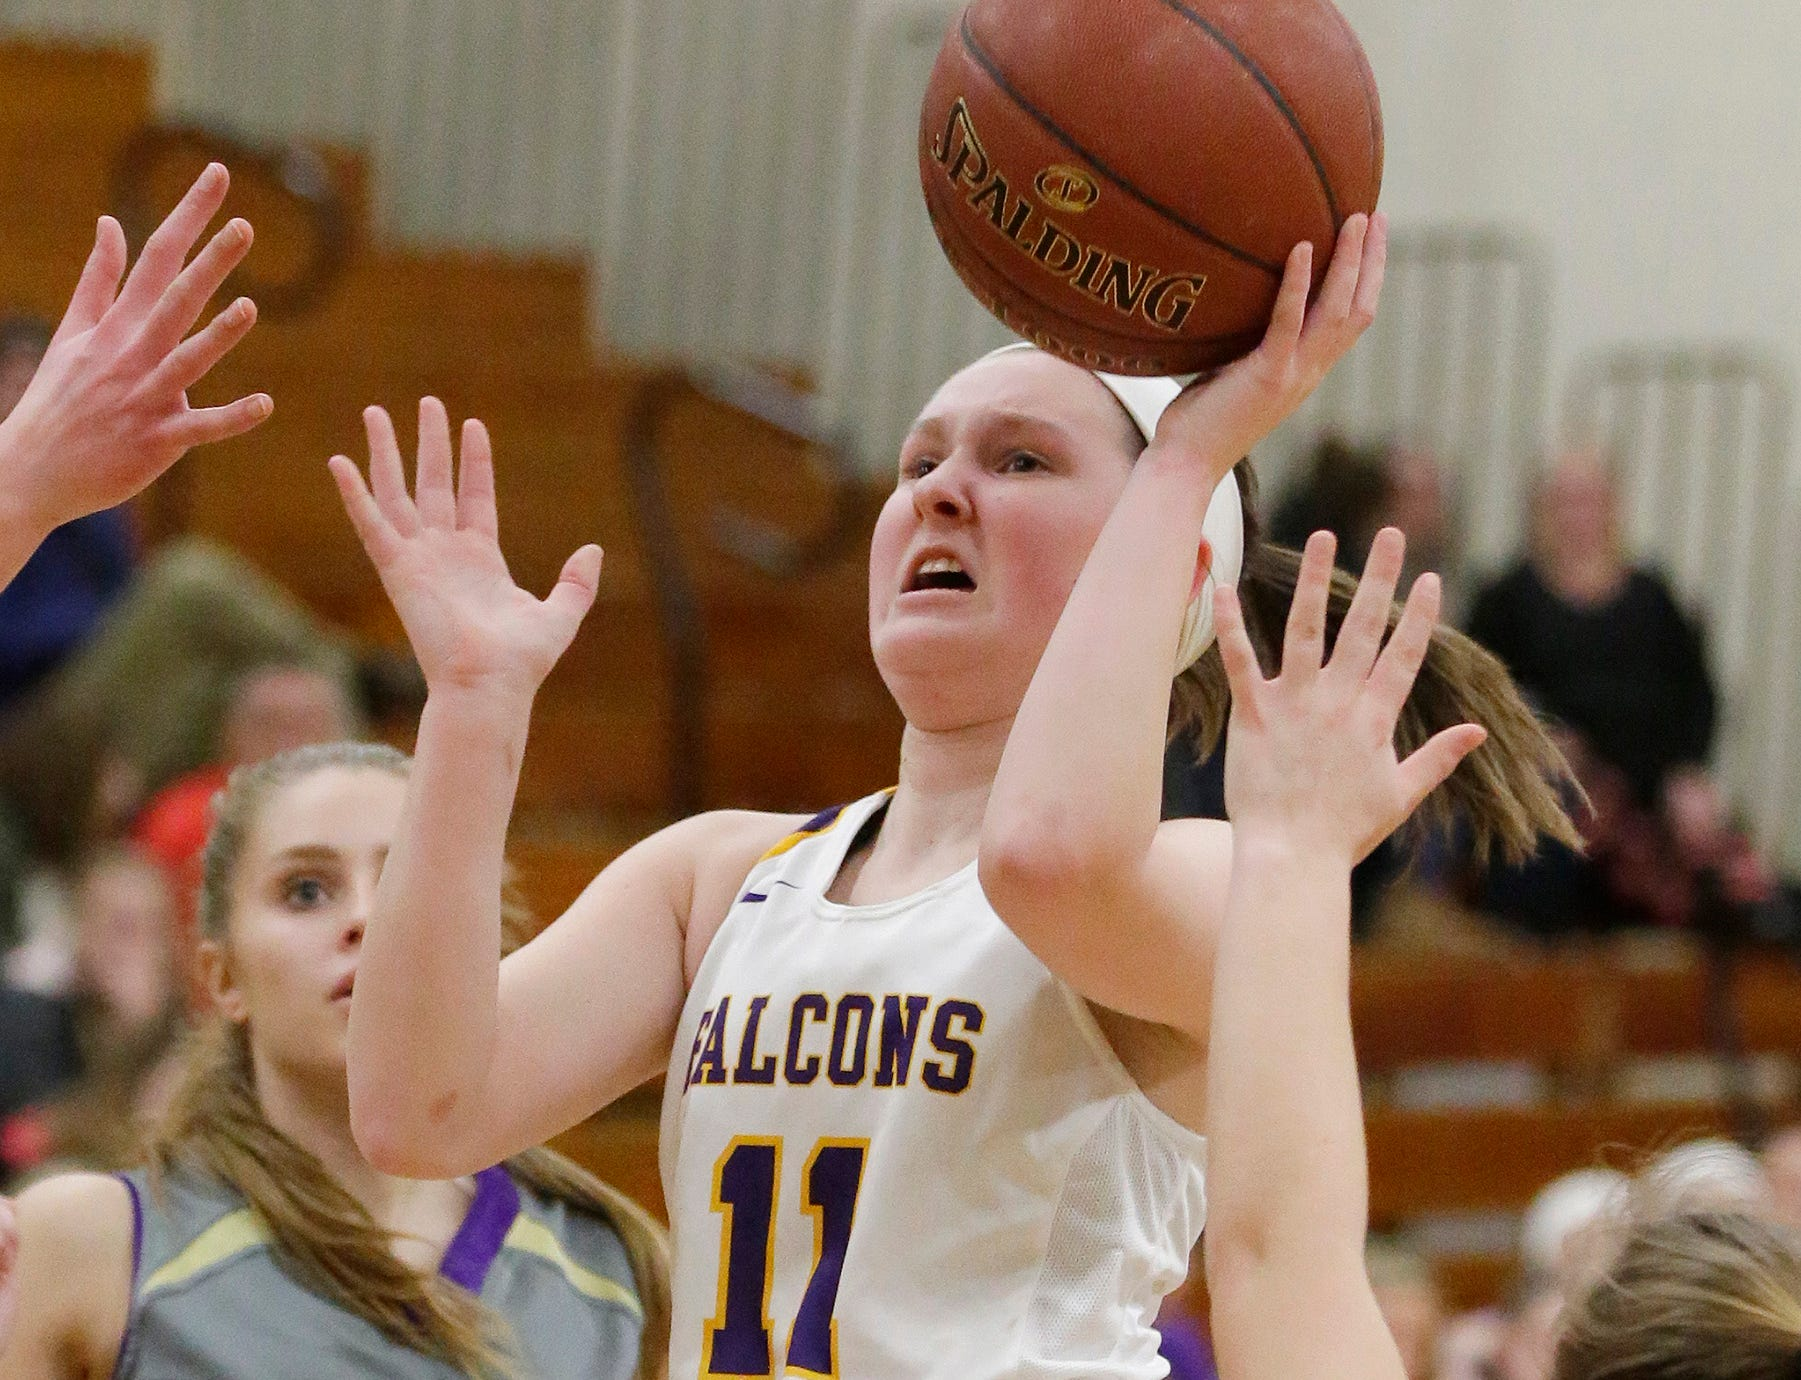 Sheboygan Falls' Claire Smallwood (11) launches a shot against Two Rivers, Thursday, February 14, 2019, in Sheboygan Falls, Wis.